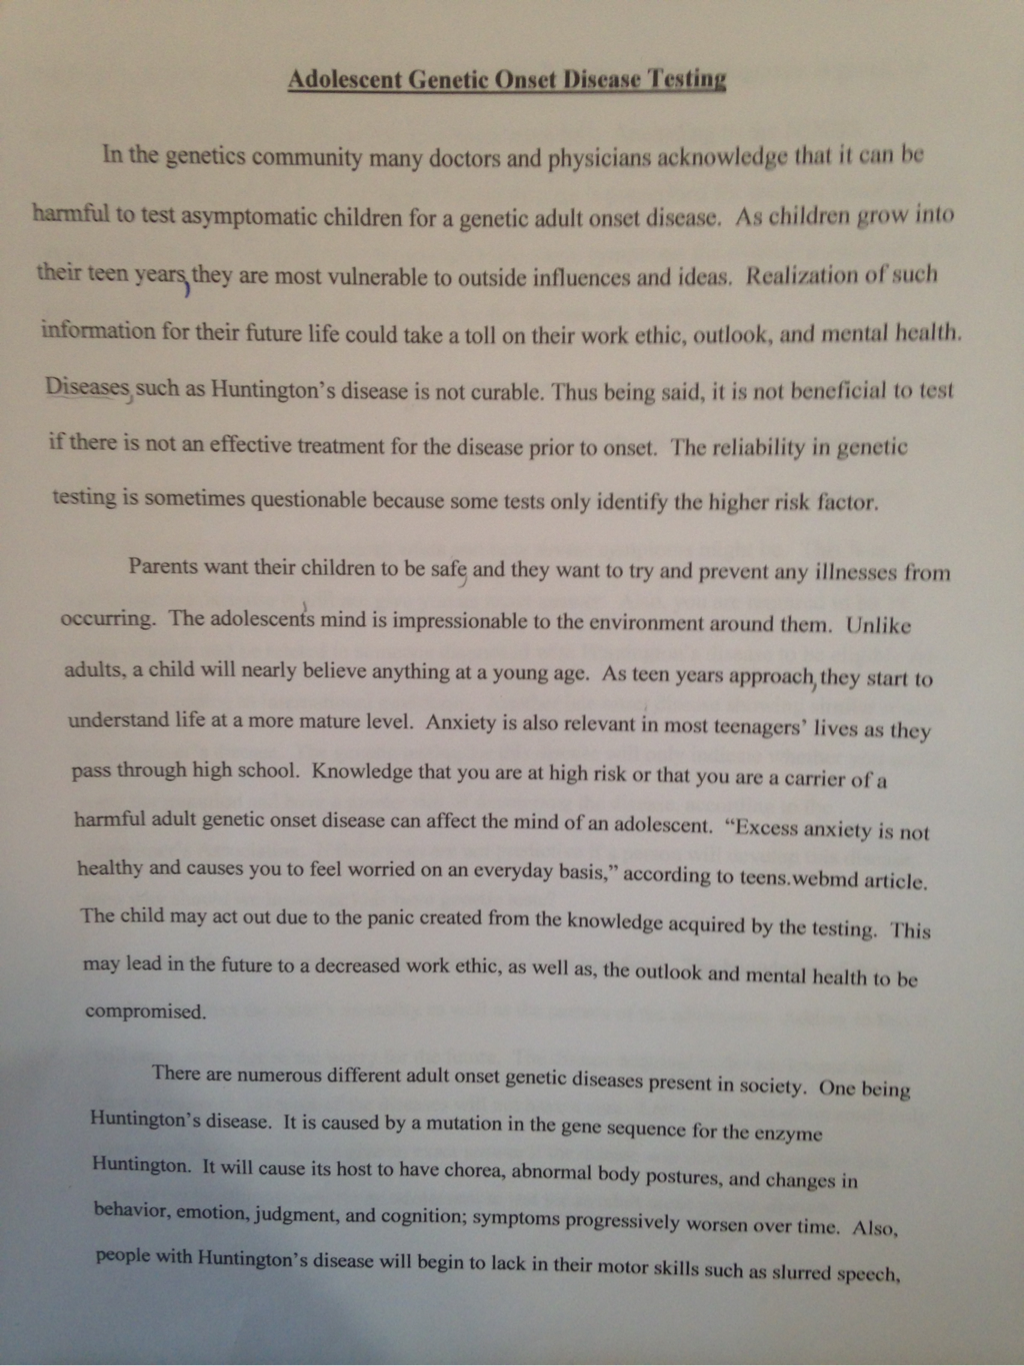 blog i created an essay for my honors biology class it was an essay that was supporting my ideas about genetic adult onset testing for adolescents